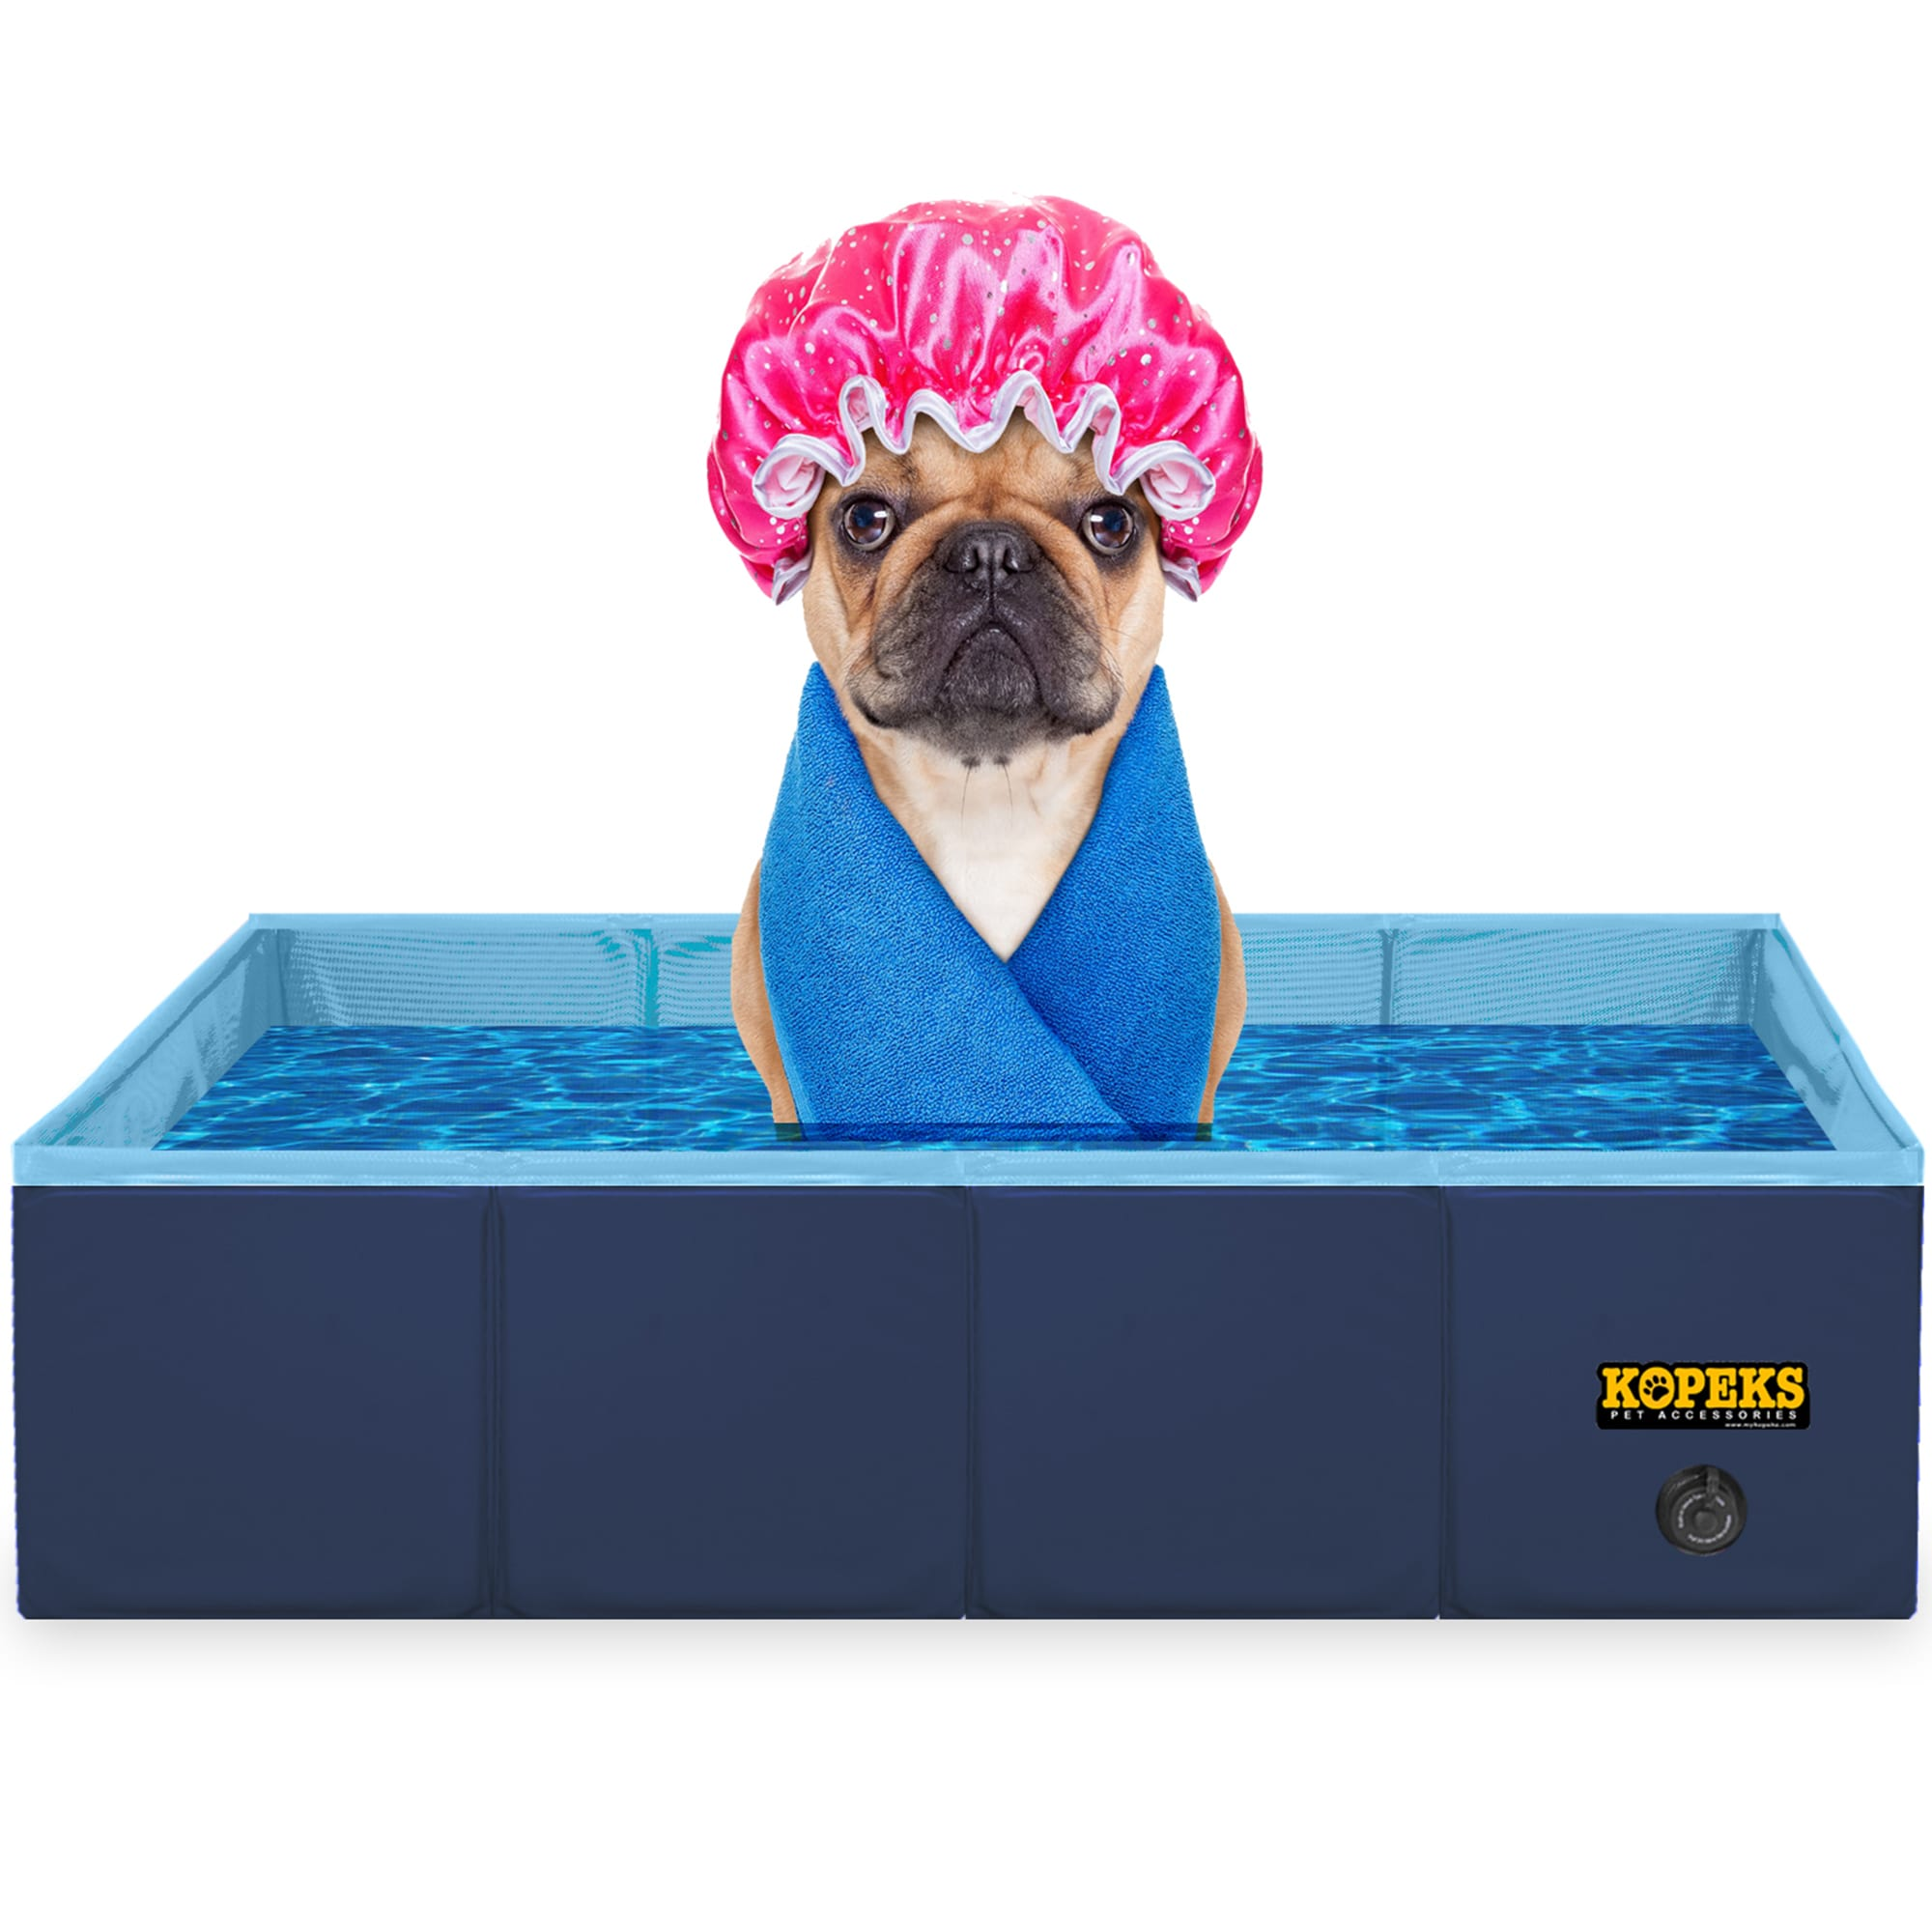 Kopeks Rectangular Outdoor Pet Blue Swimming Pool Large Petco